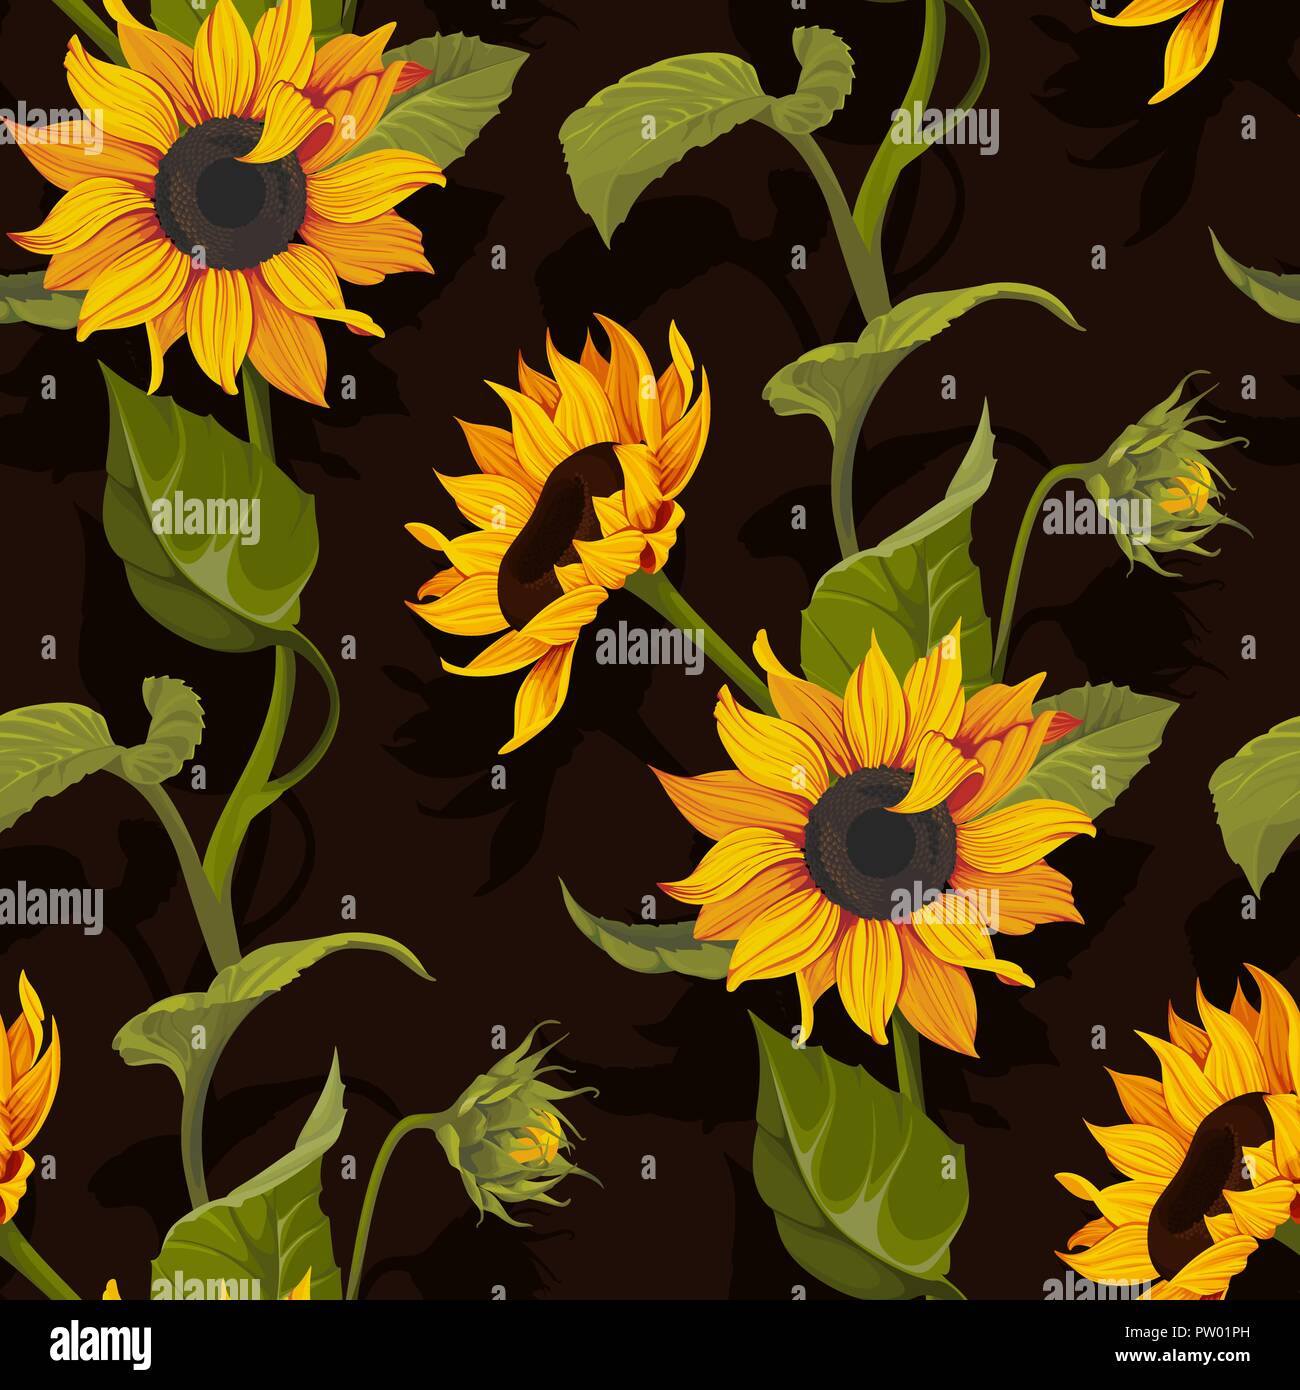 sunflower vector seamless pattern floral texture on black background PW01PH